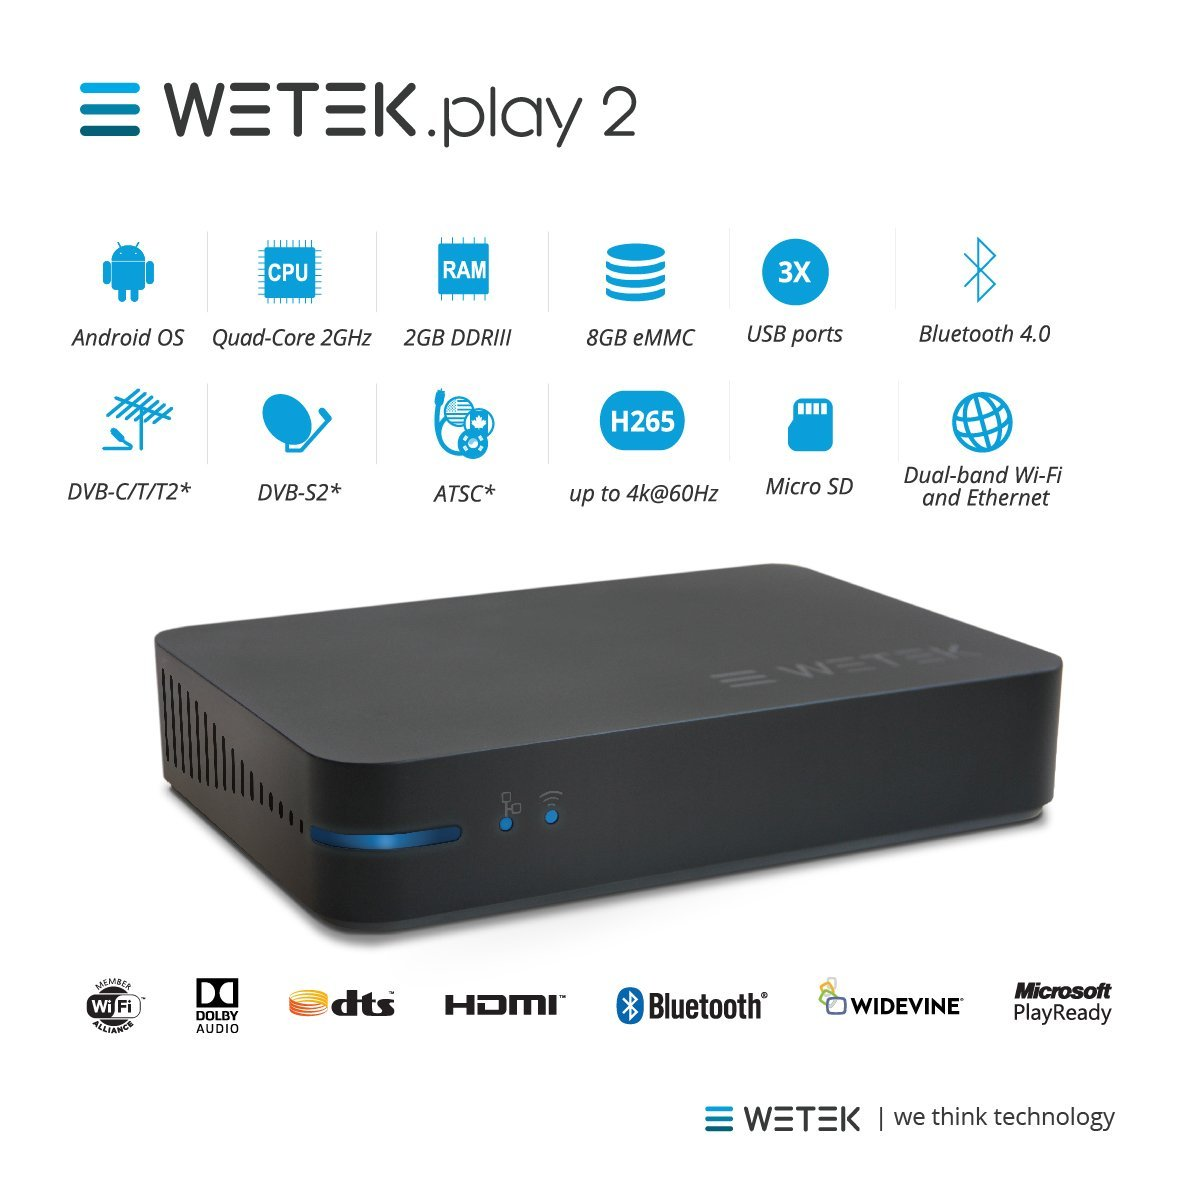 WeTeck Play 2 Specs